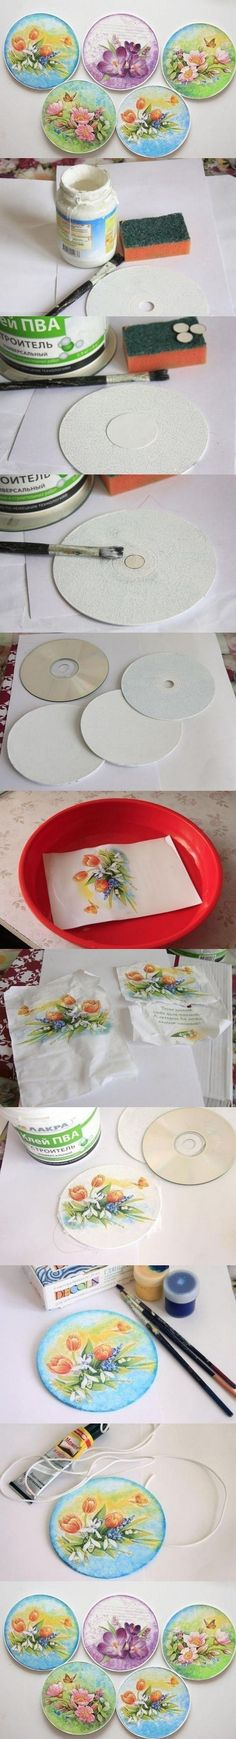 Craft with CDs Ideas and InspirationVitamin-Ha | Vitamin-Ha